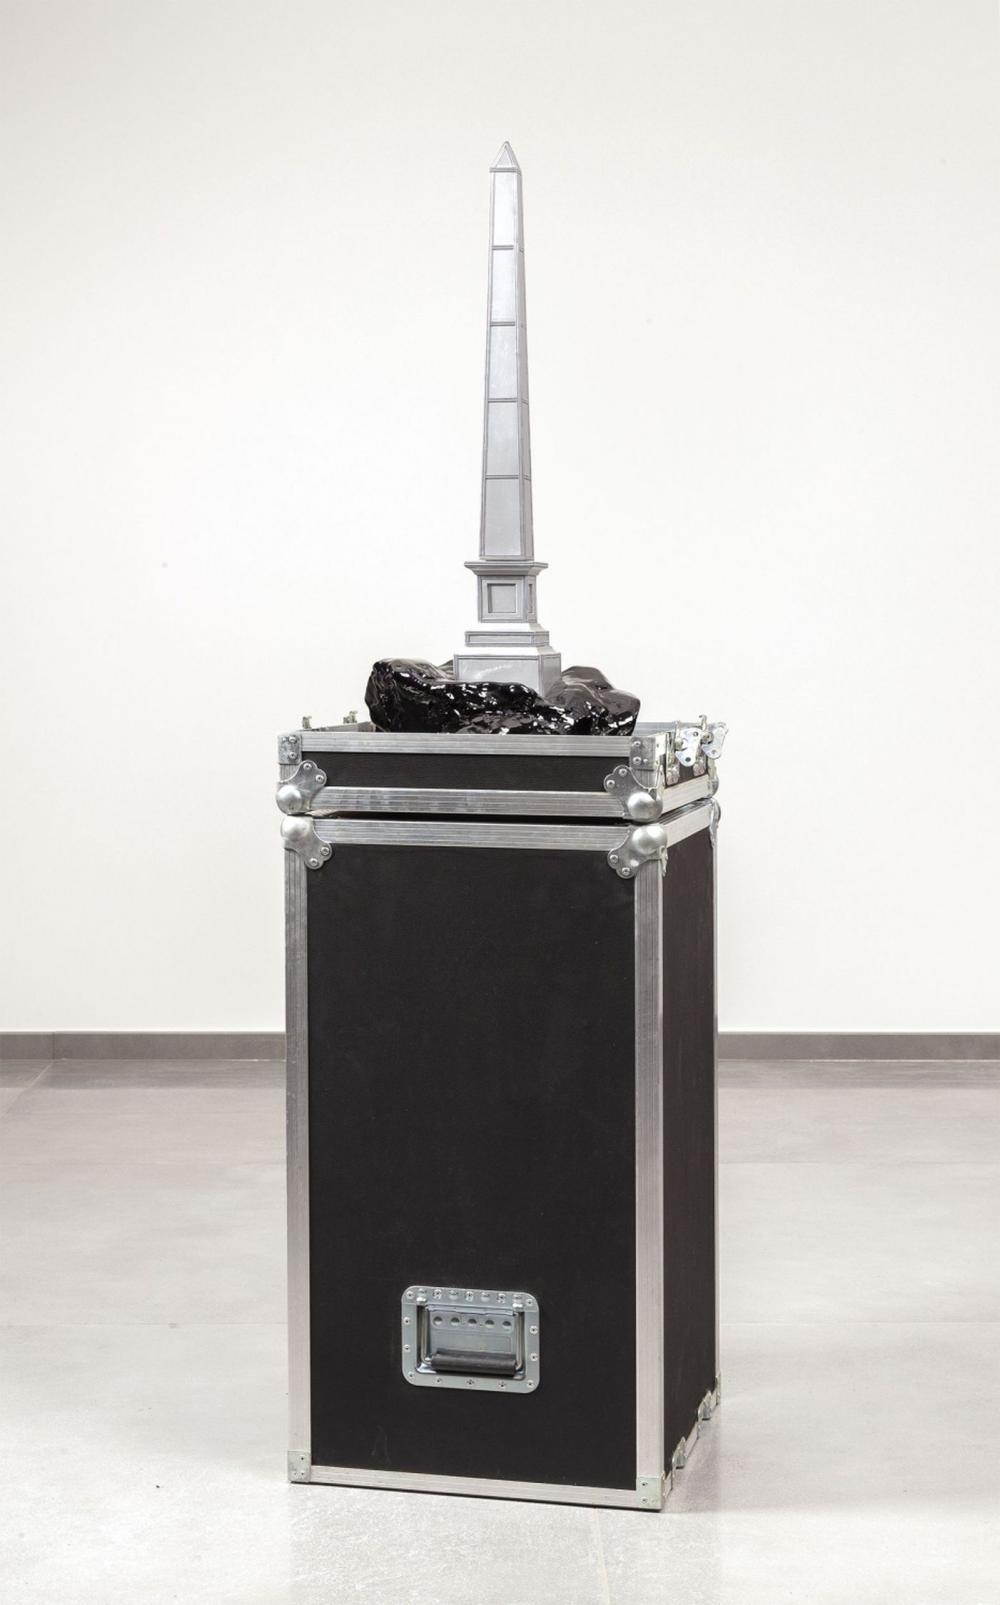 Aerts Michaël - Box 3 (from the Series: Mobile Monuments) (2007)